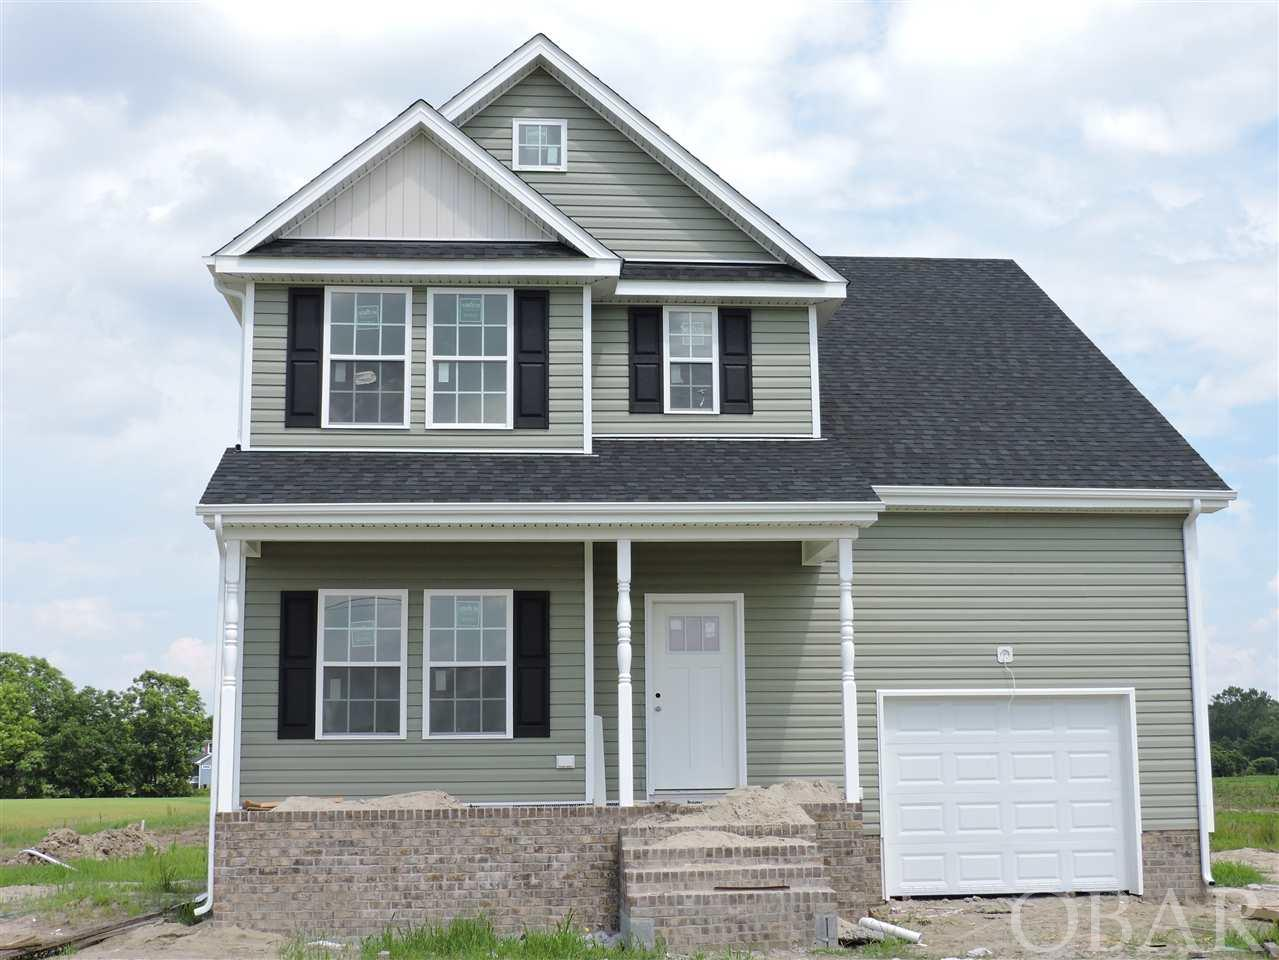 289 Old Swamp Road,South Mills,NC 27976,4 Bedrooms Bedrooms,2 BathroomsBathrooms,Residential,Old Swamp Road,101154